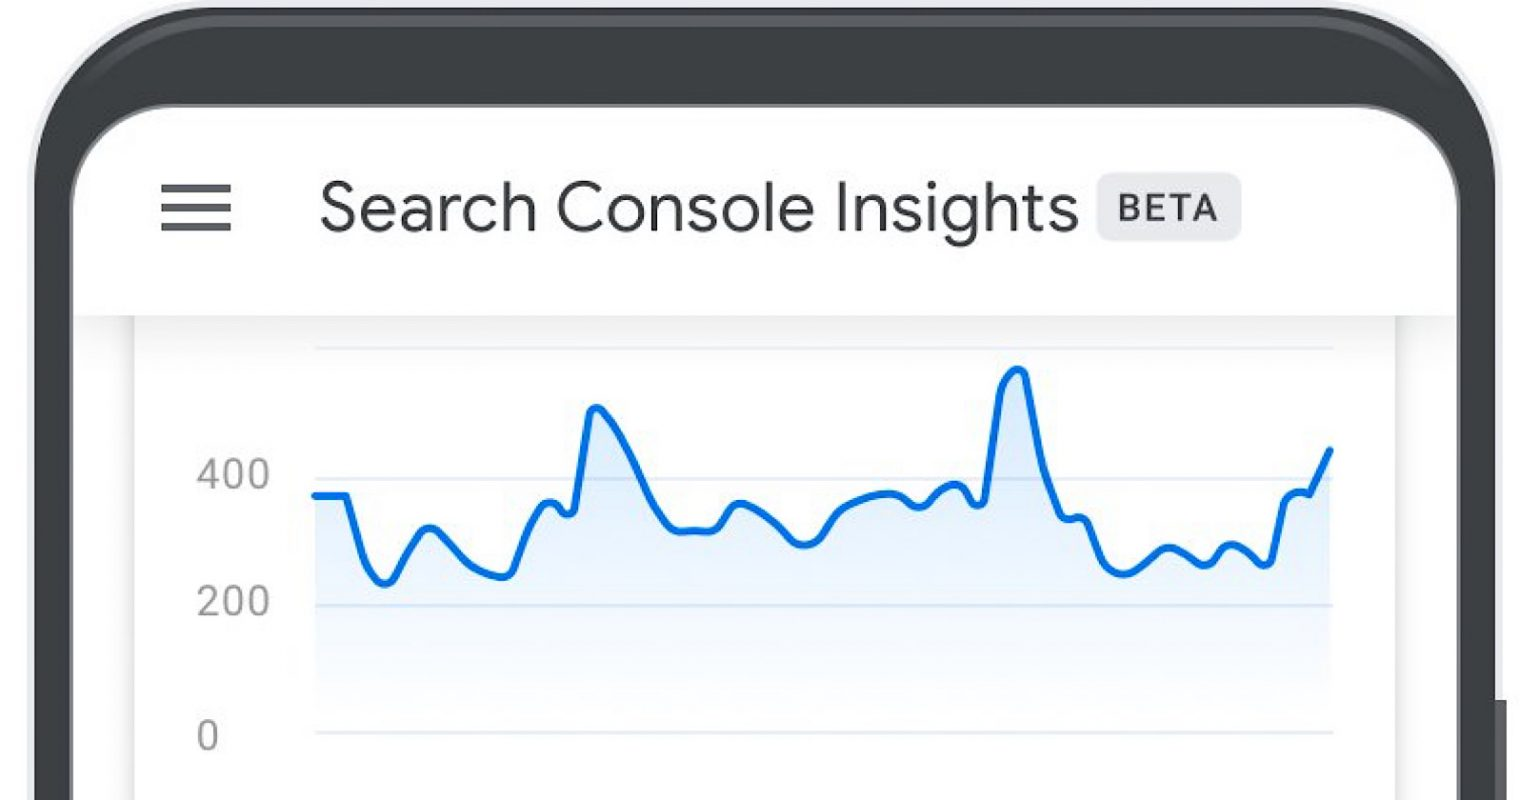 Google Launches Search Console Insights